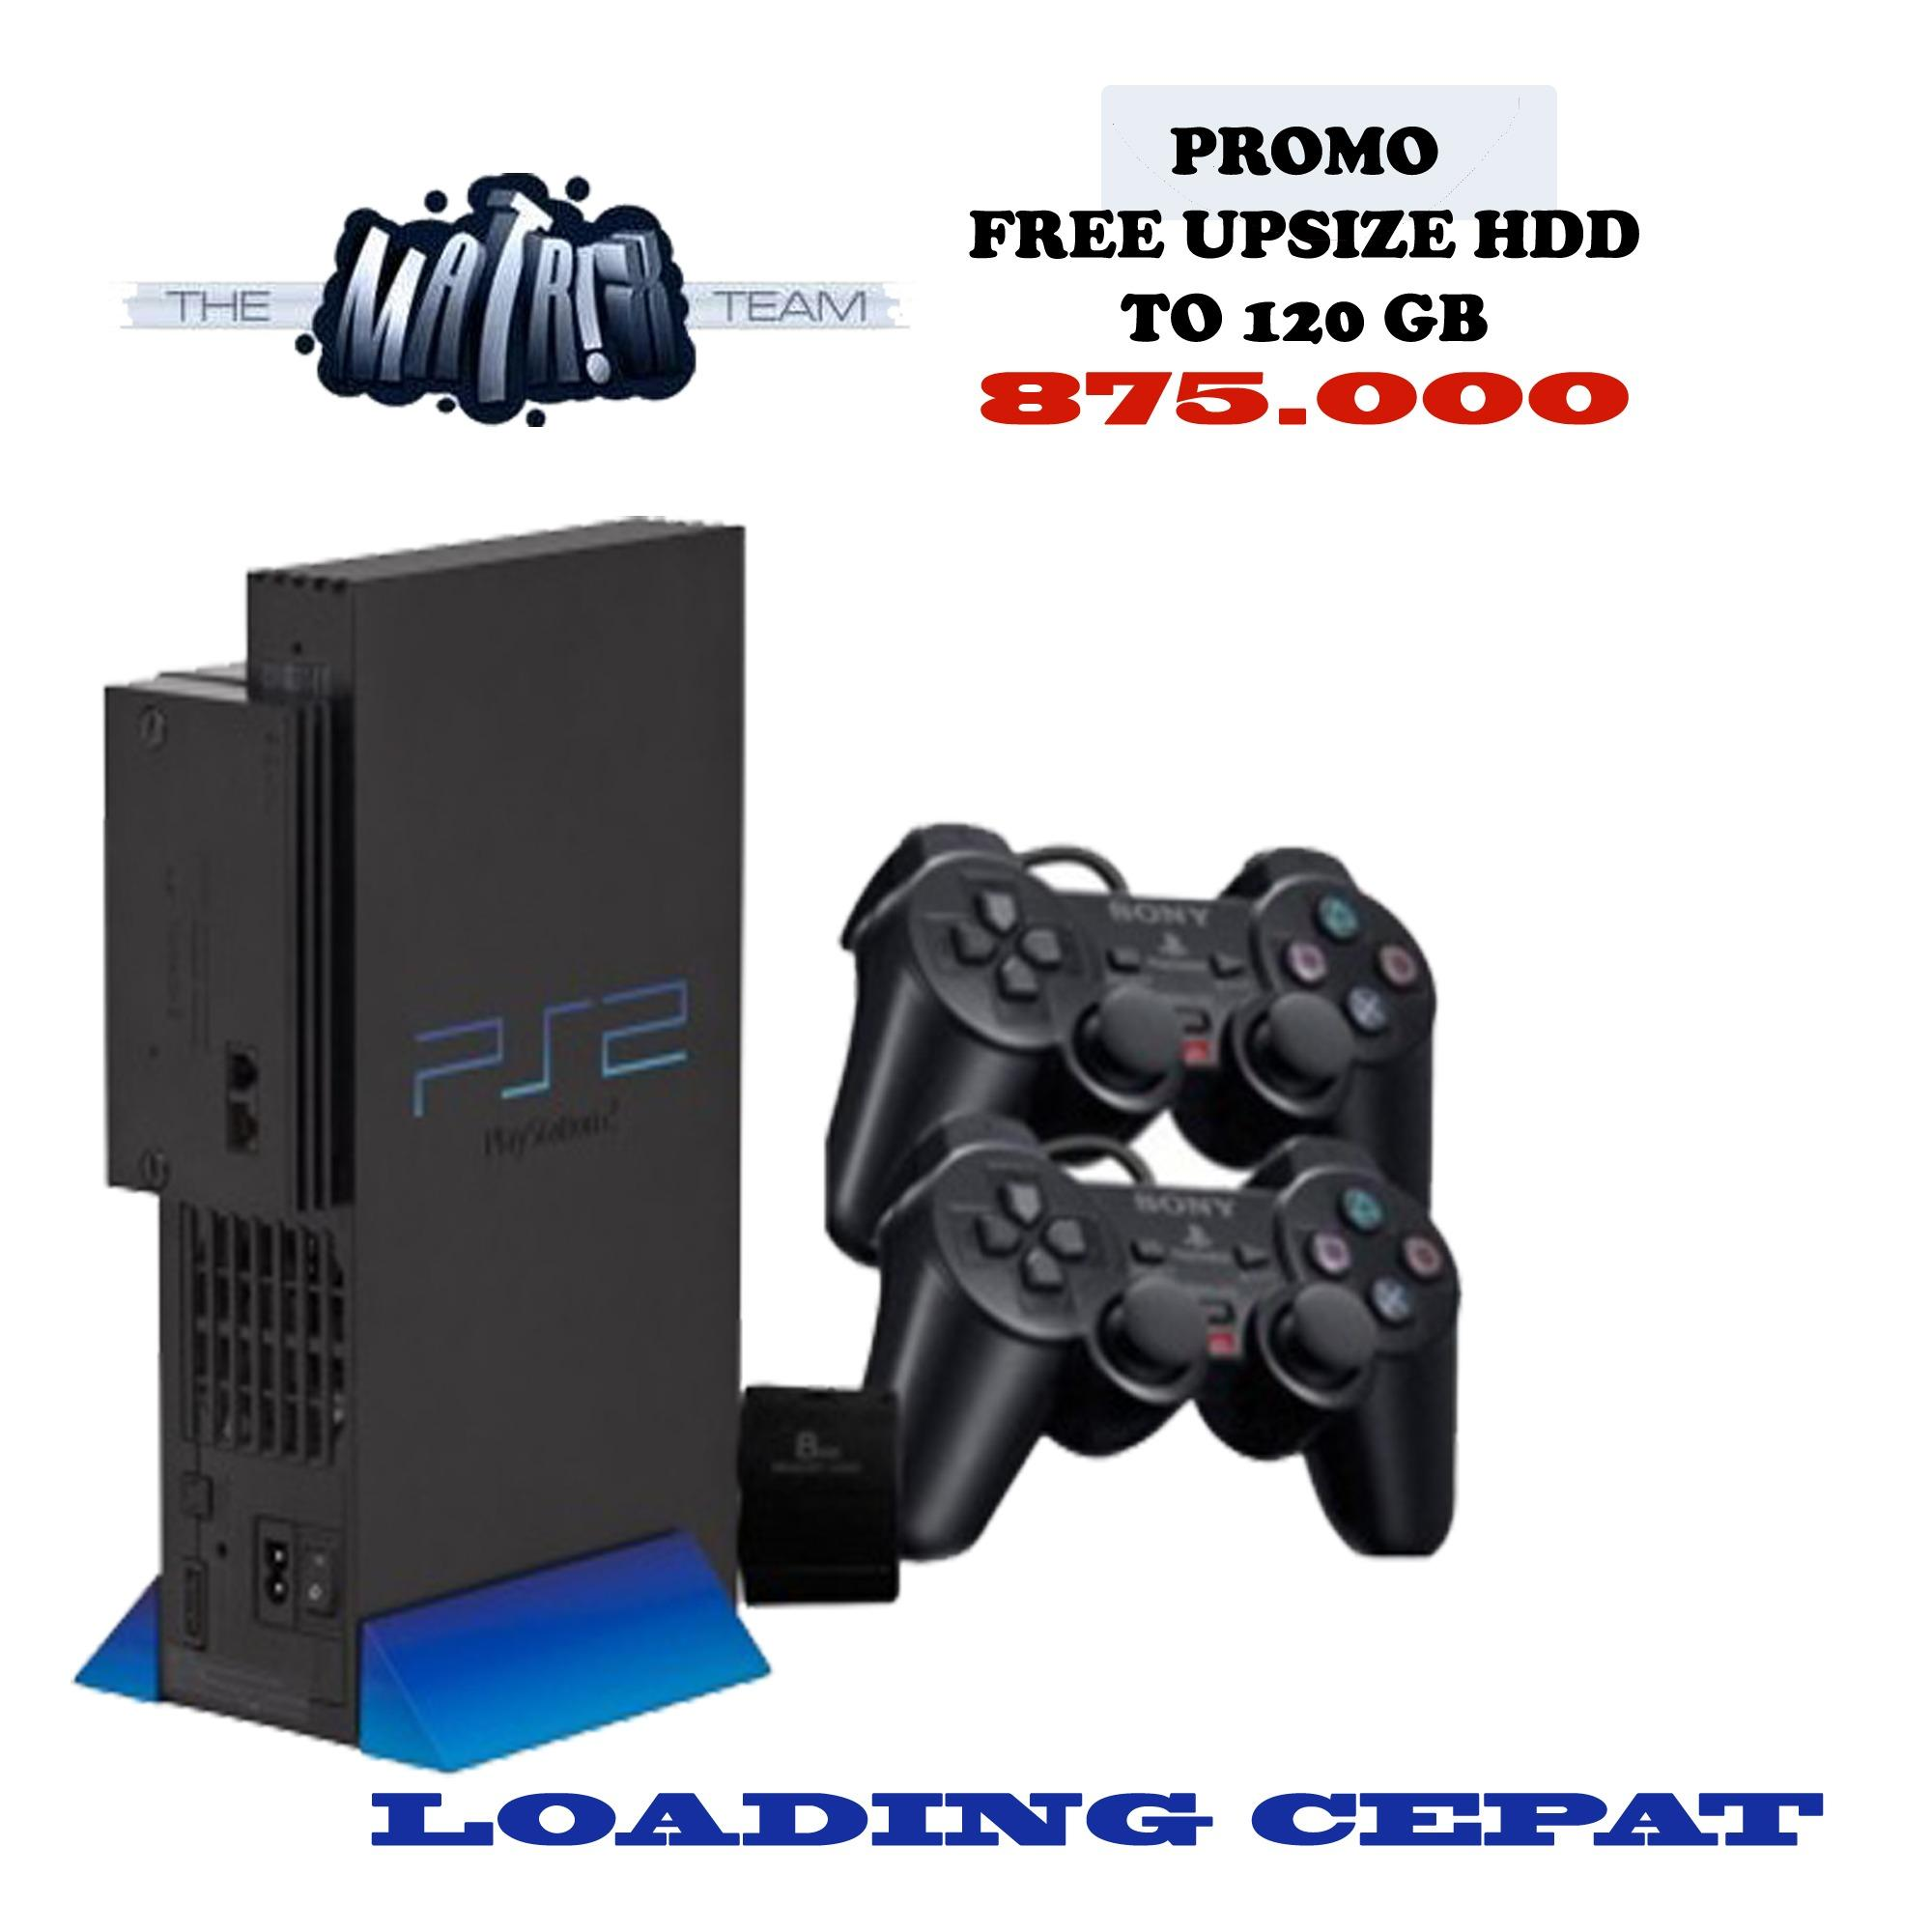 Konsol Playstation Terbaru Voucher Ps Plus Asia Indonesia 12 Bulan Sony Ps2 Fat N A Matrix Hdd160gb Full Game